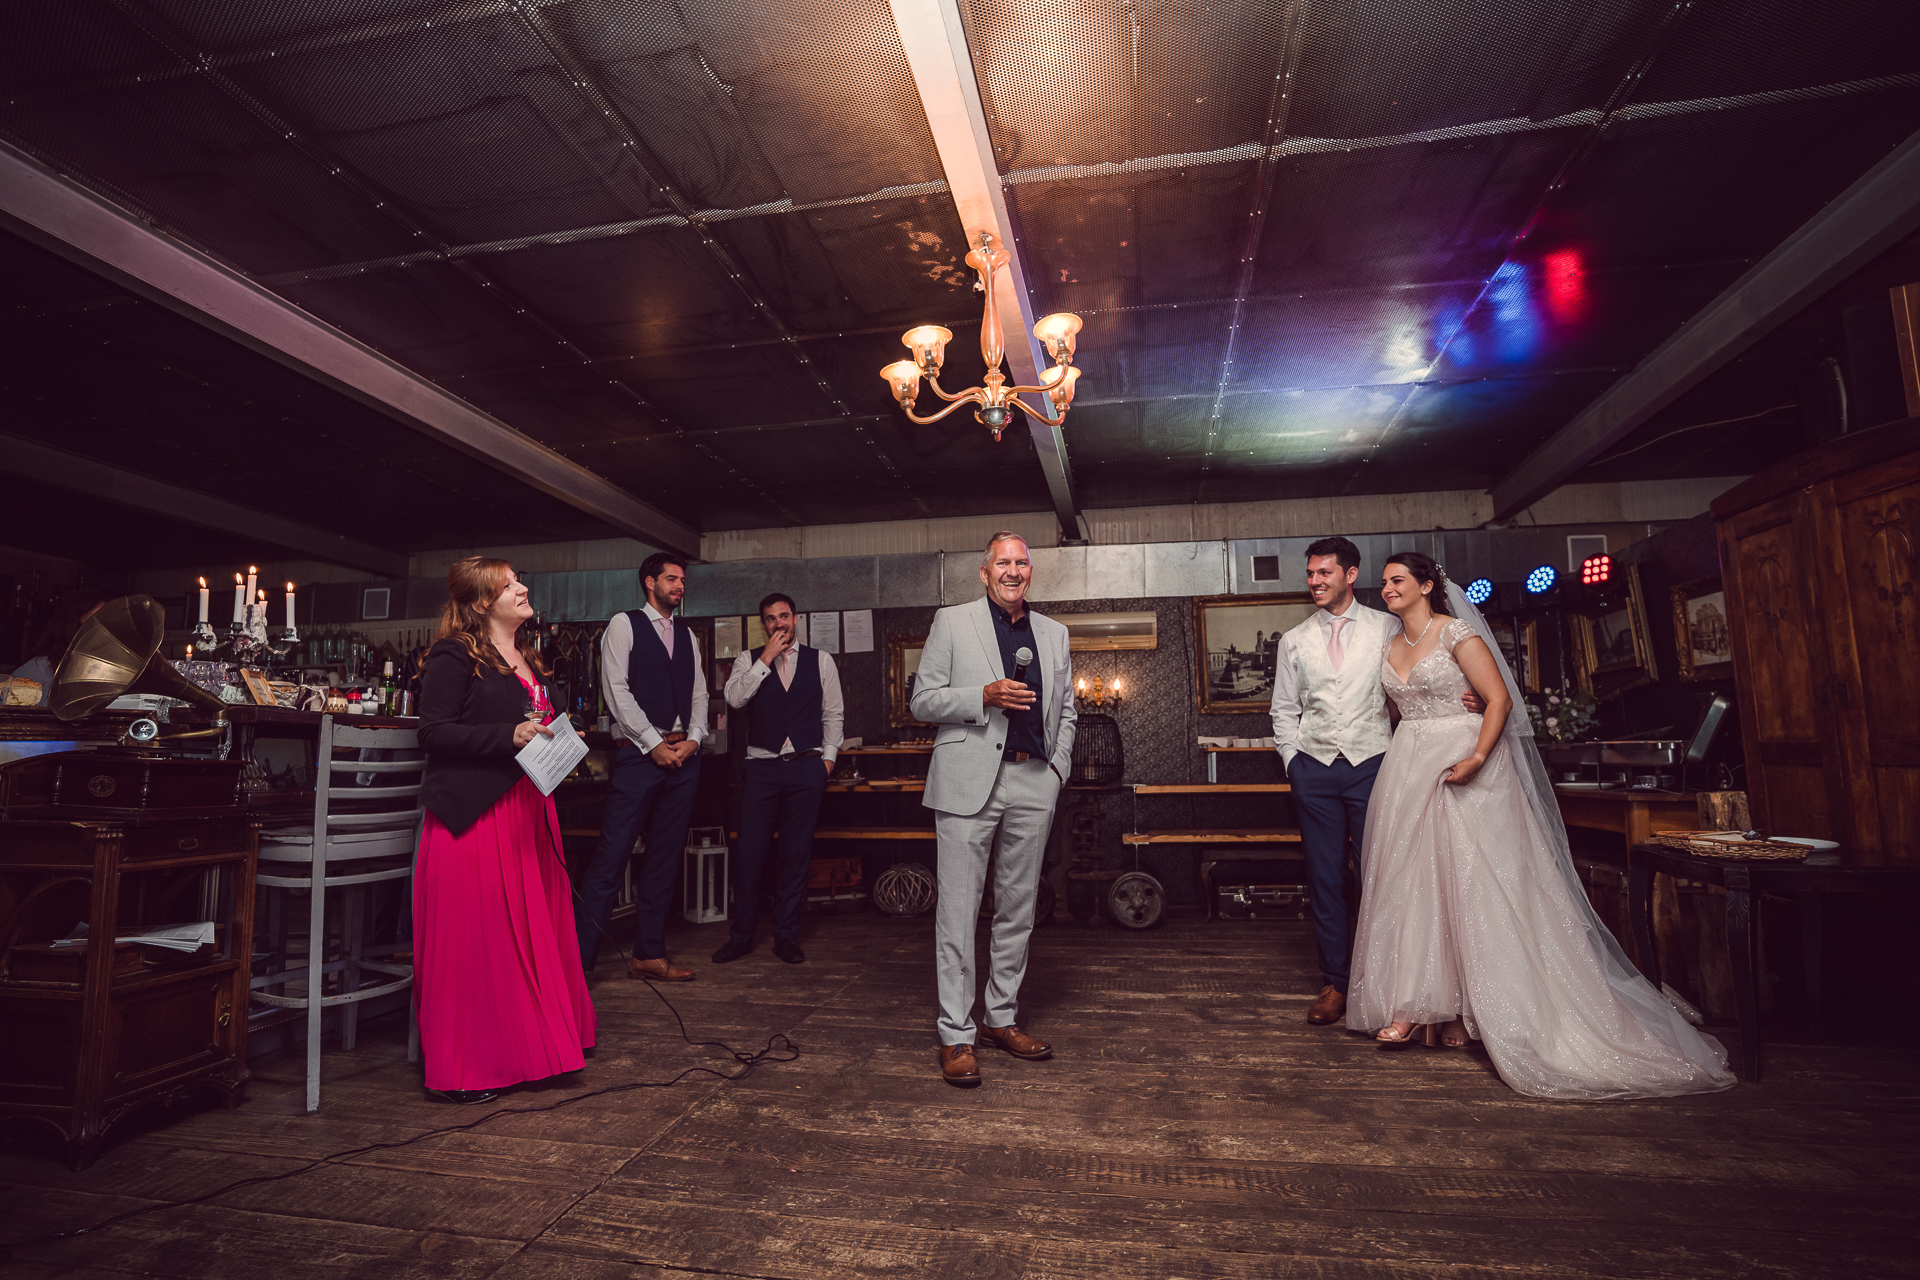 The Cocktail Bar of Sofia - Cozy Wedding Pictures | The father of the groom smiles